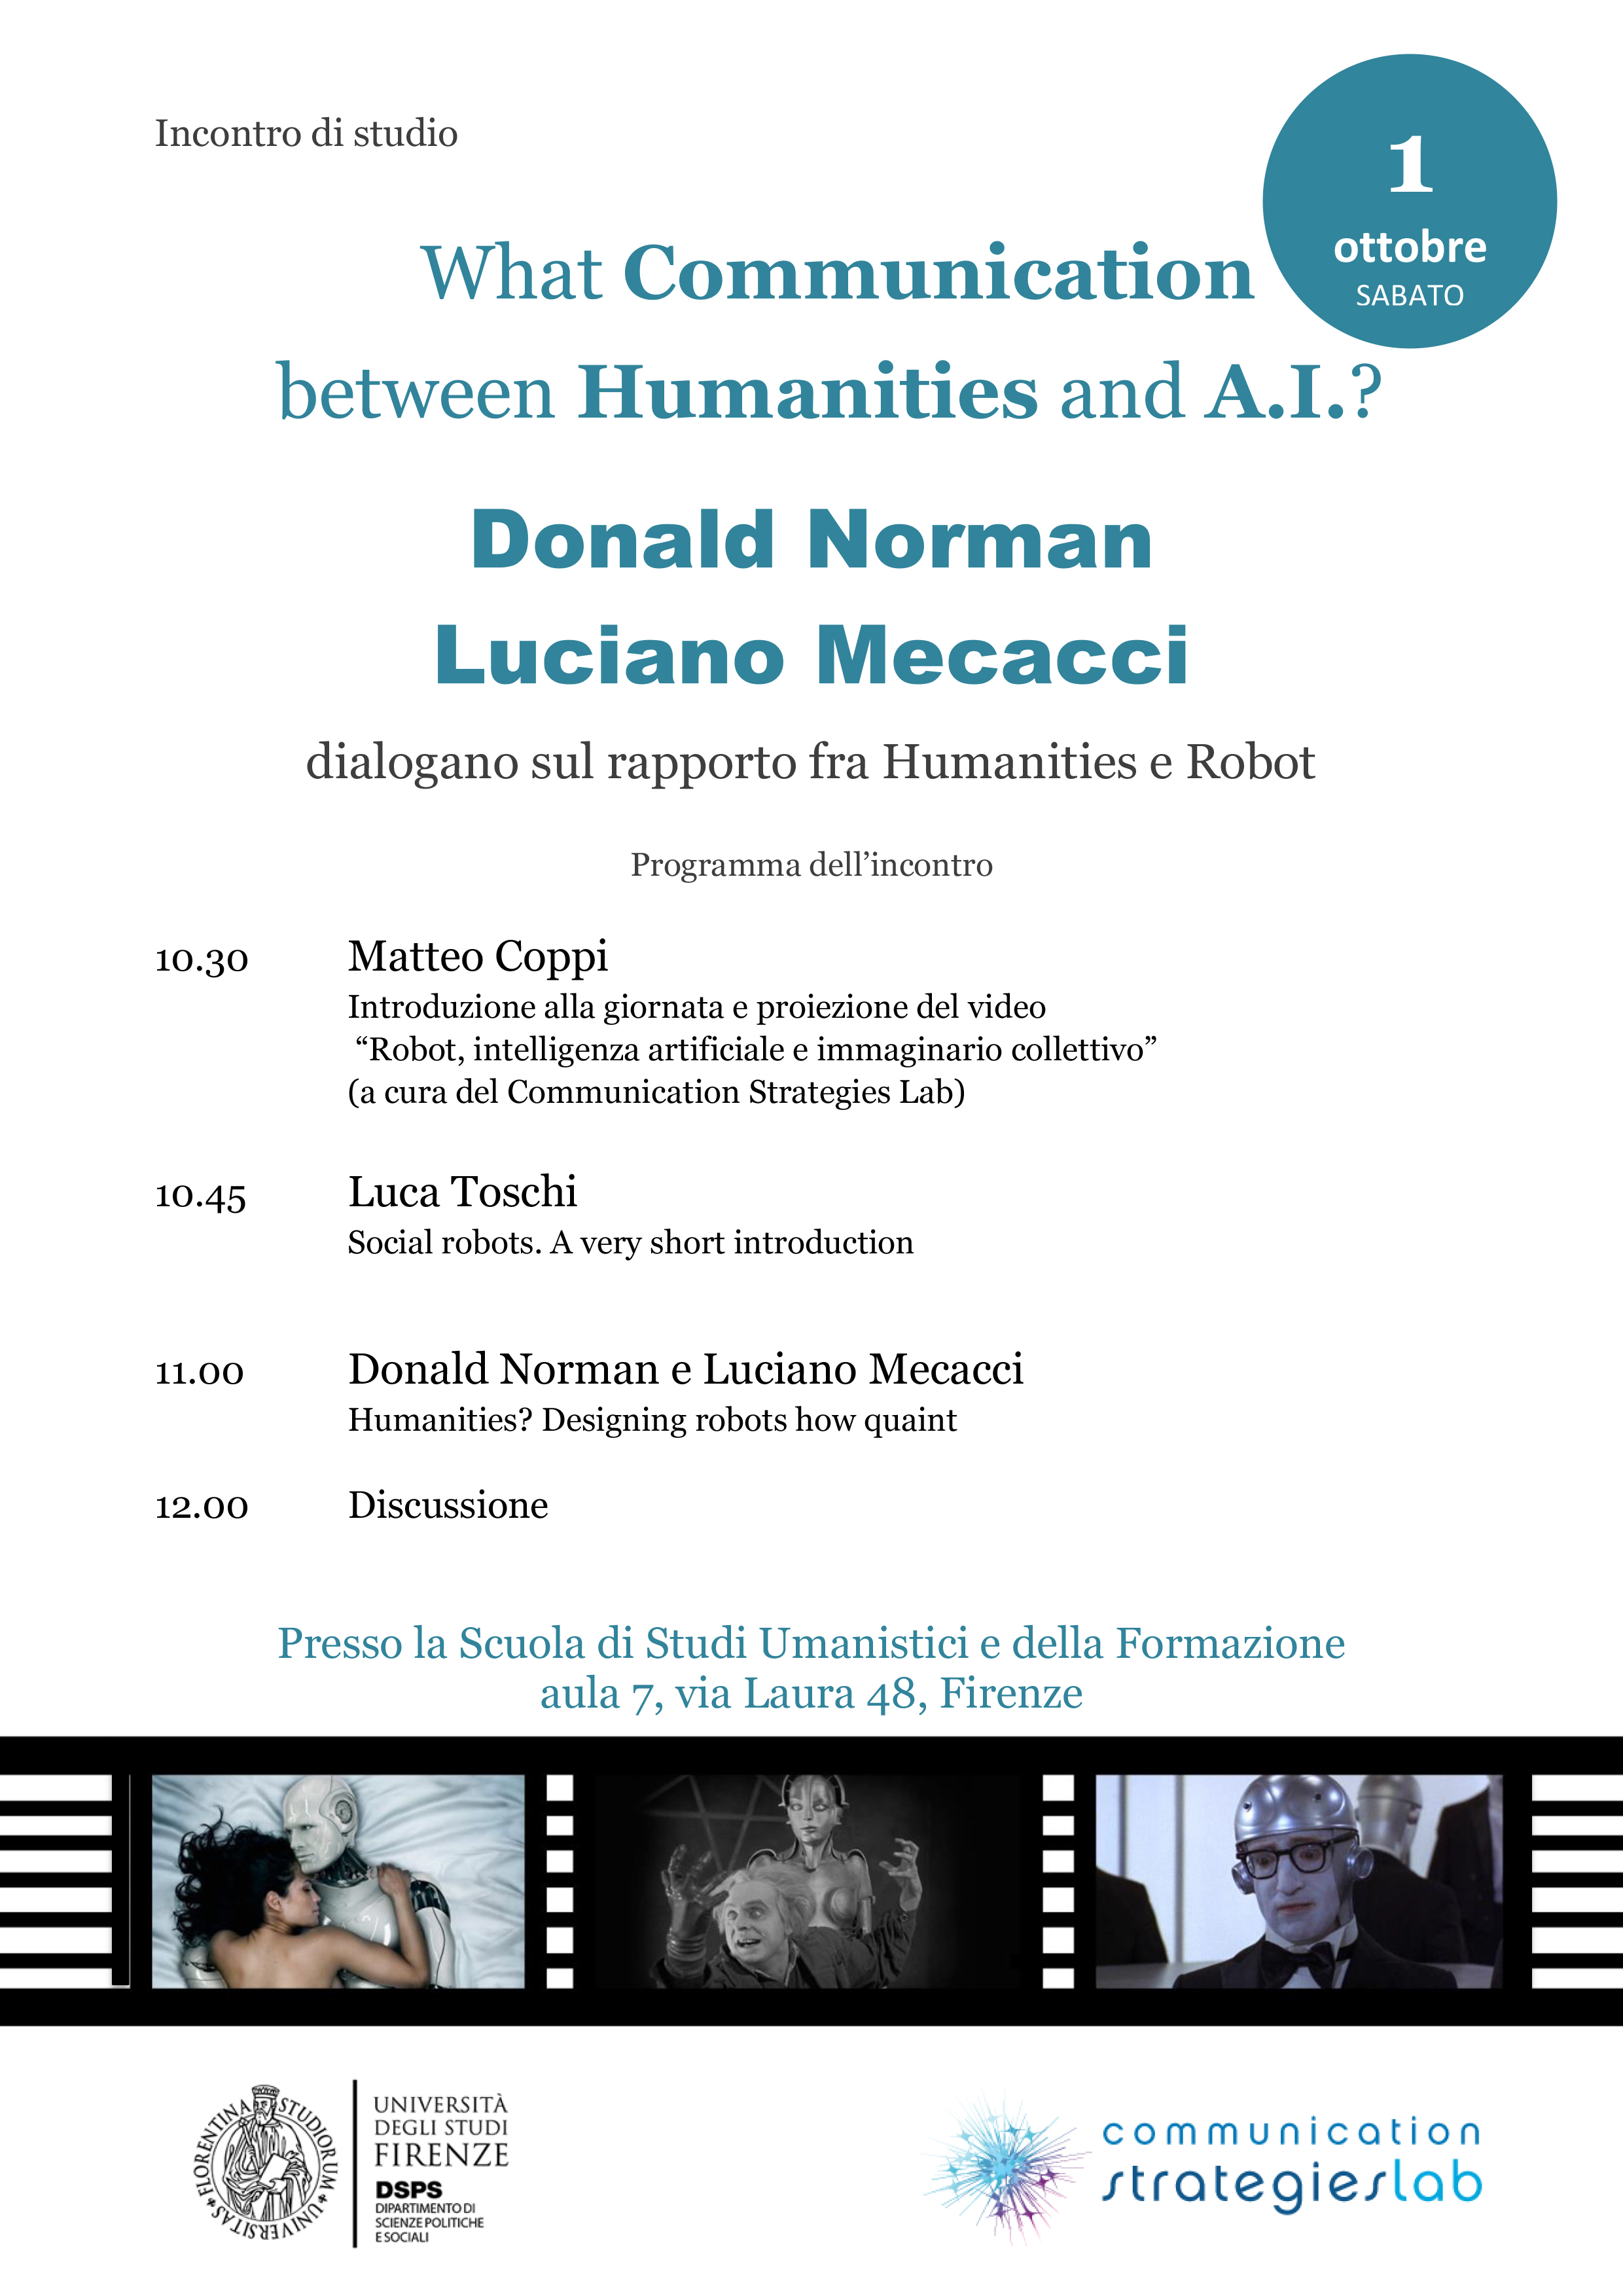 What communication between Humanities and A.I